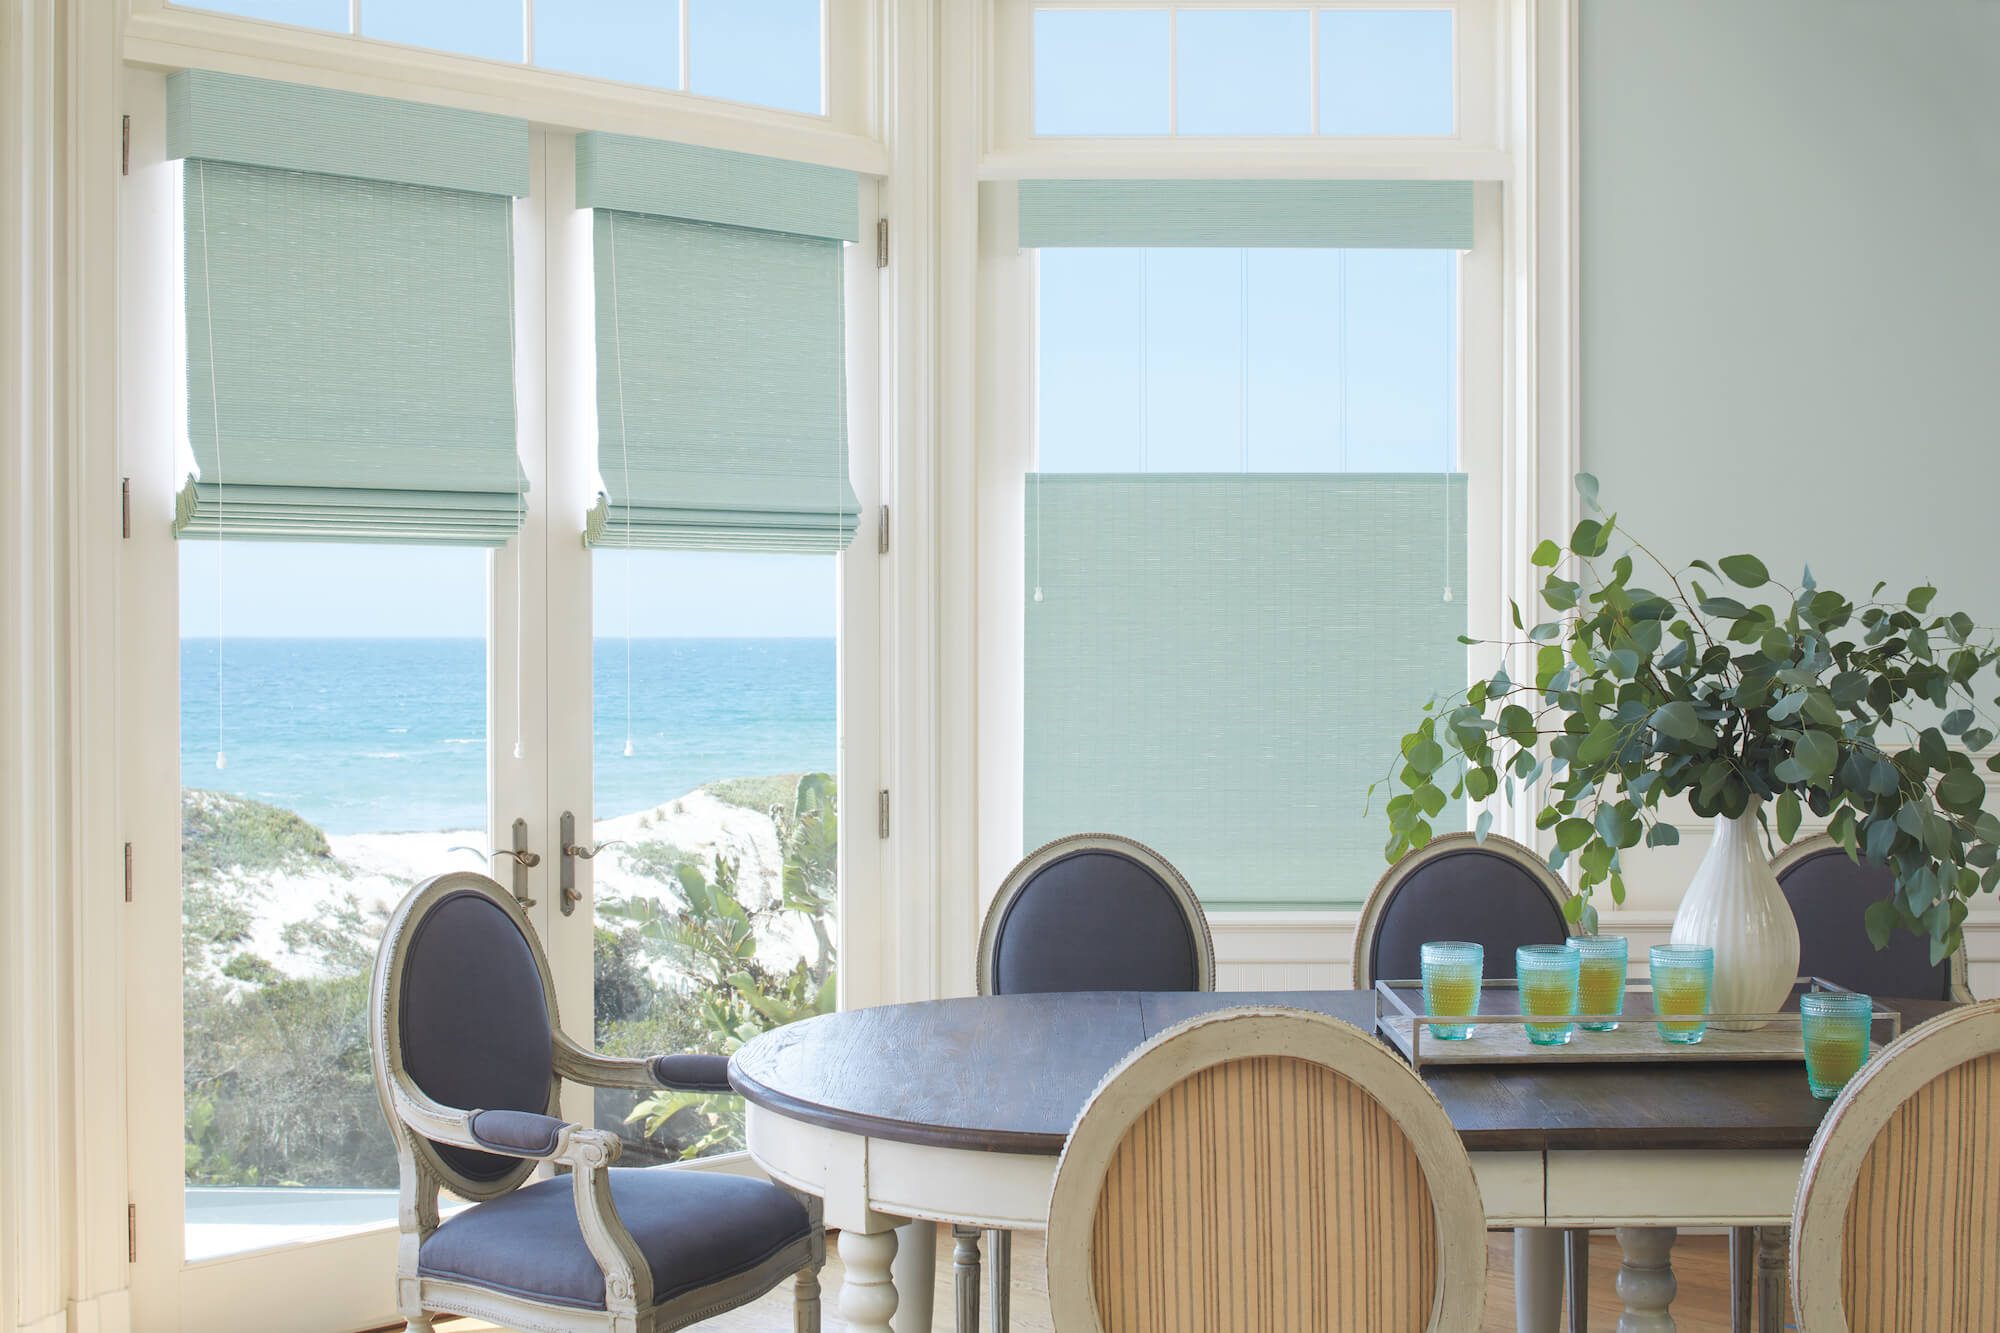 Provenance Woven Woods on shore house French Doors and dining room window